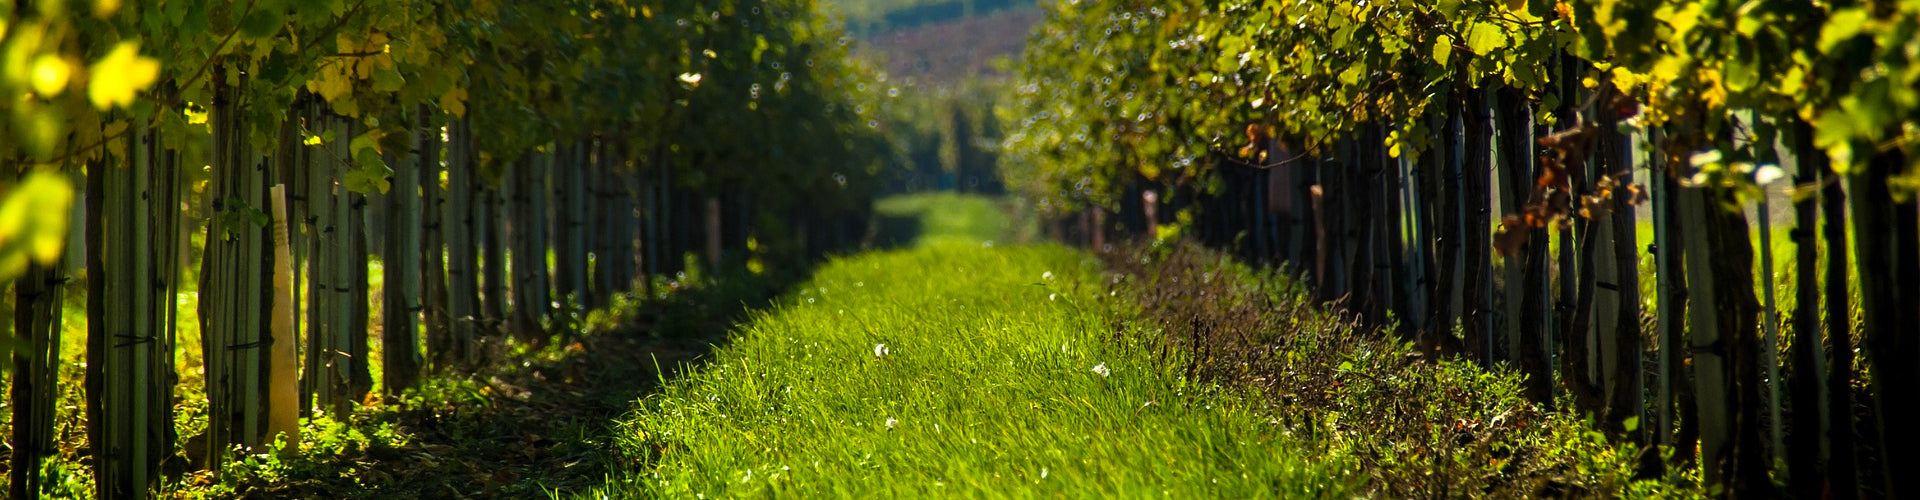 Healthy Organic Vineyard